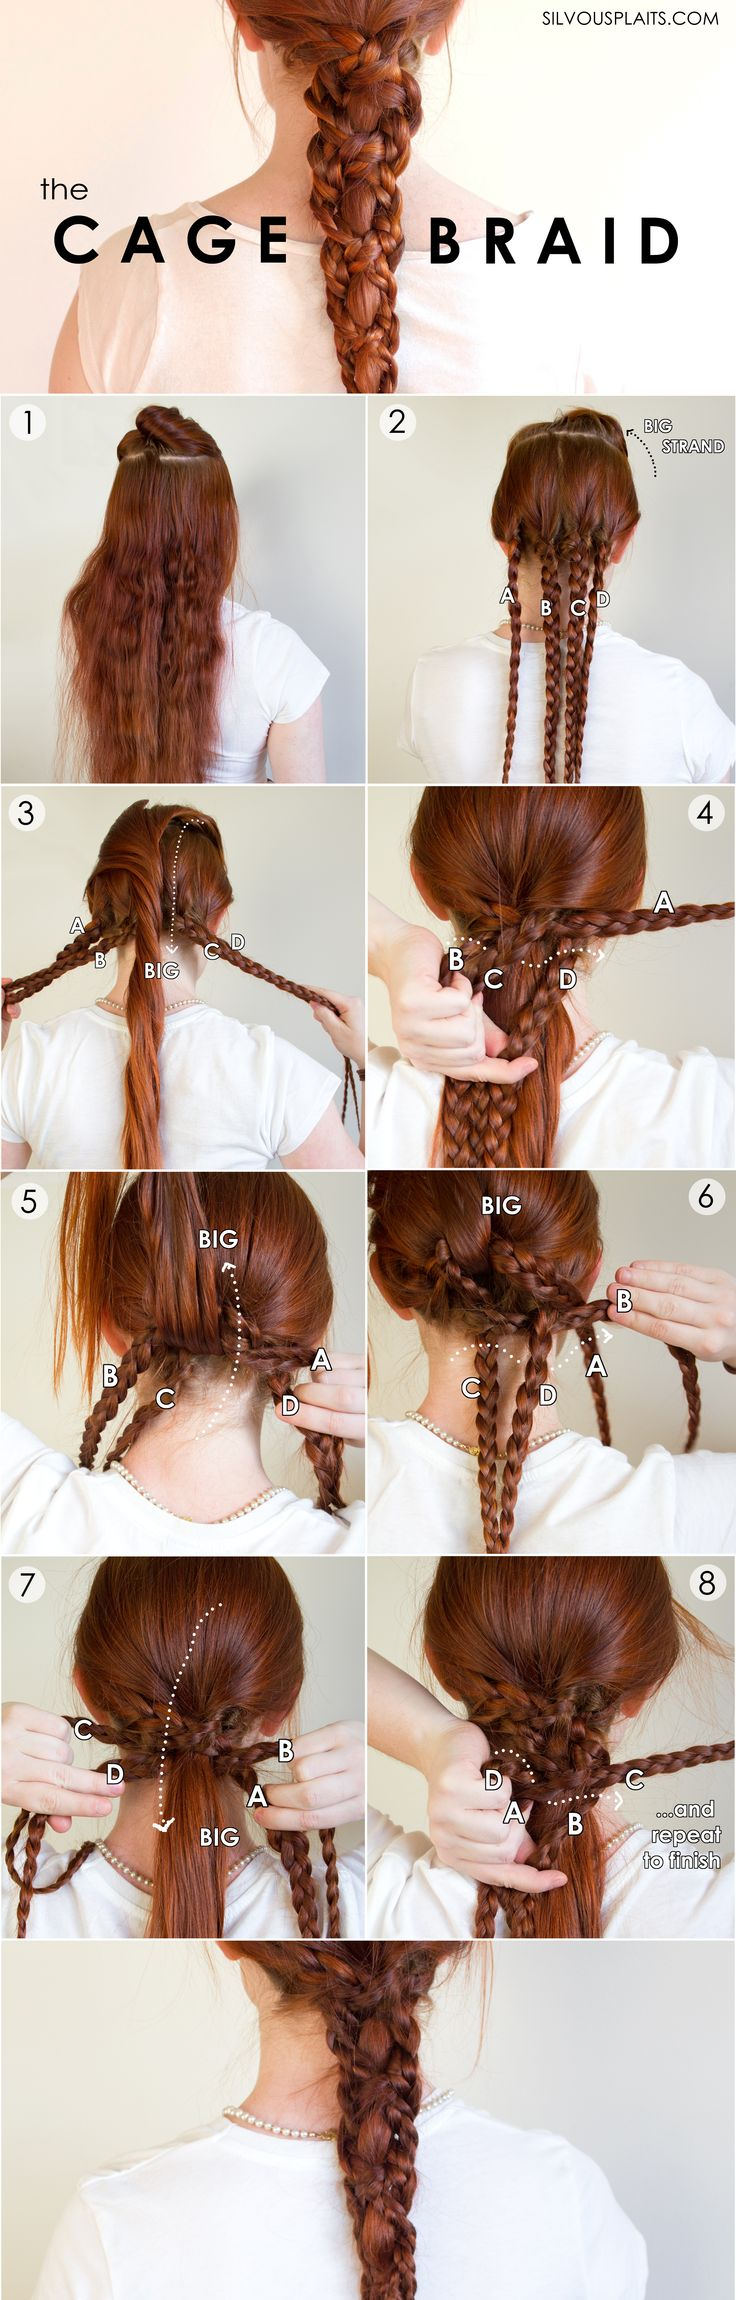 How to Do the Five Strand Cage Braid